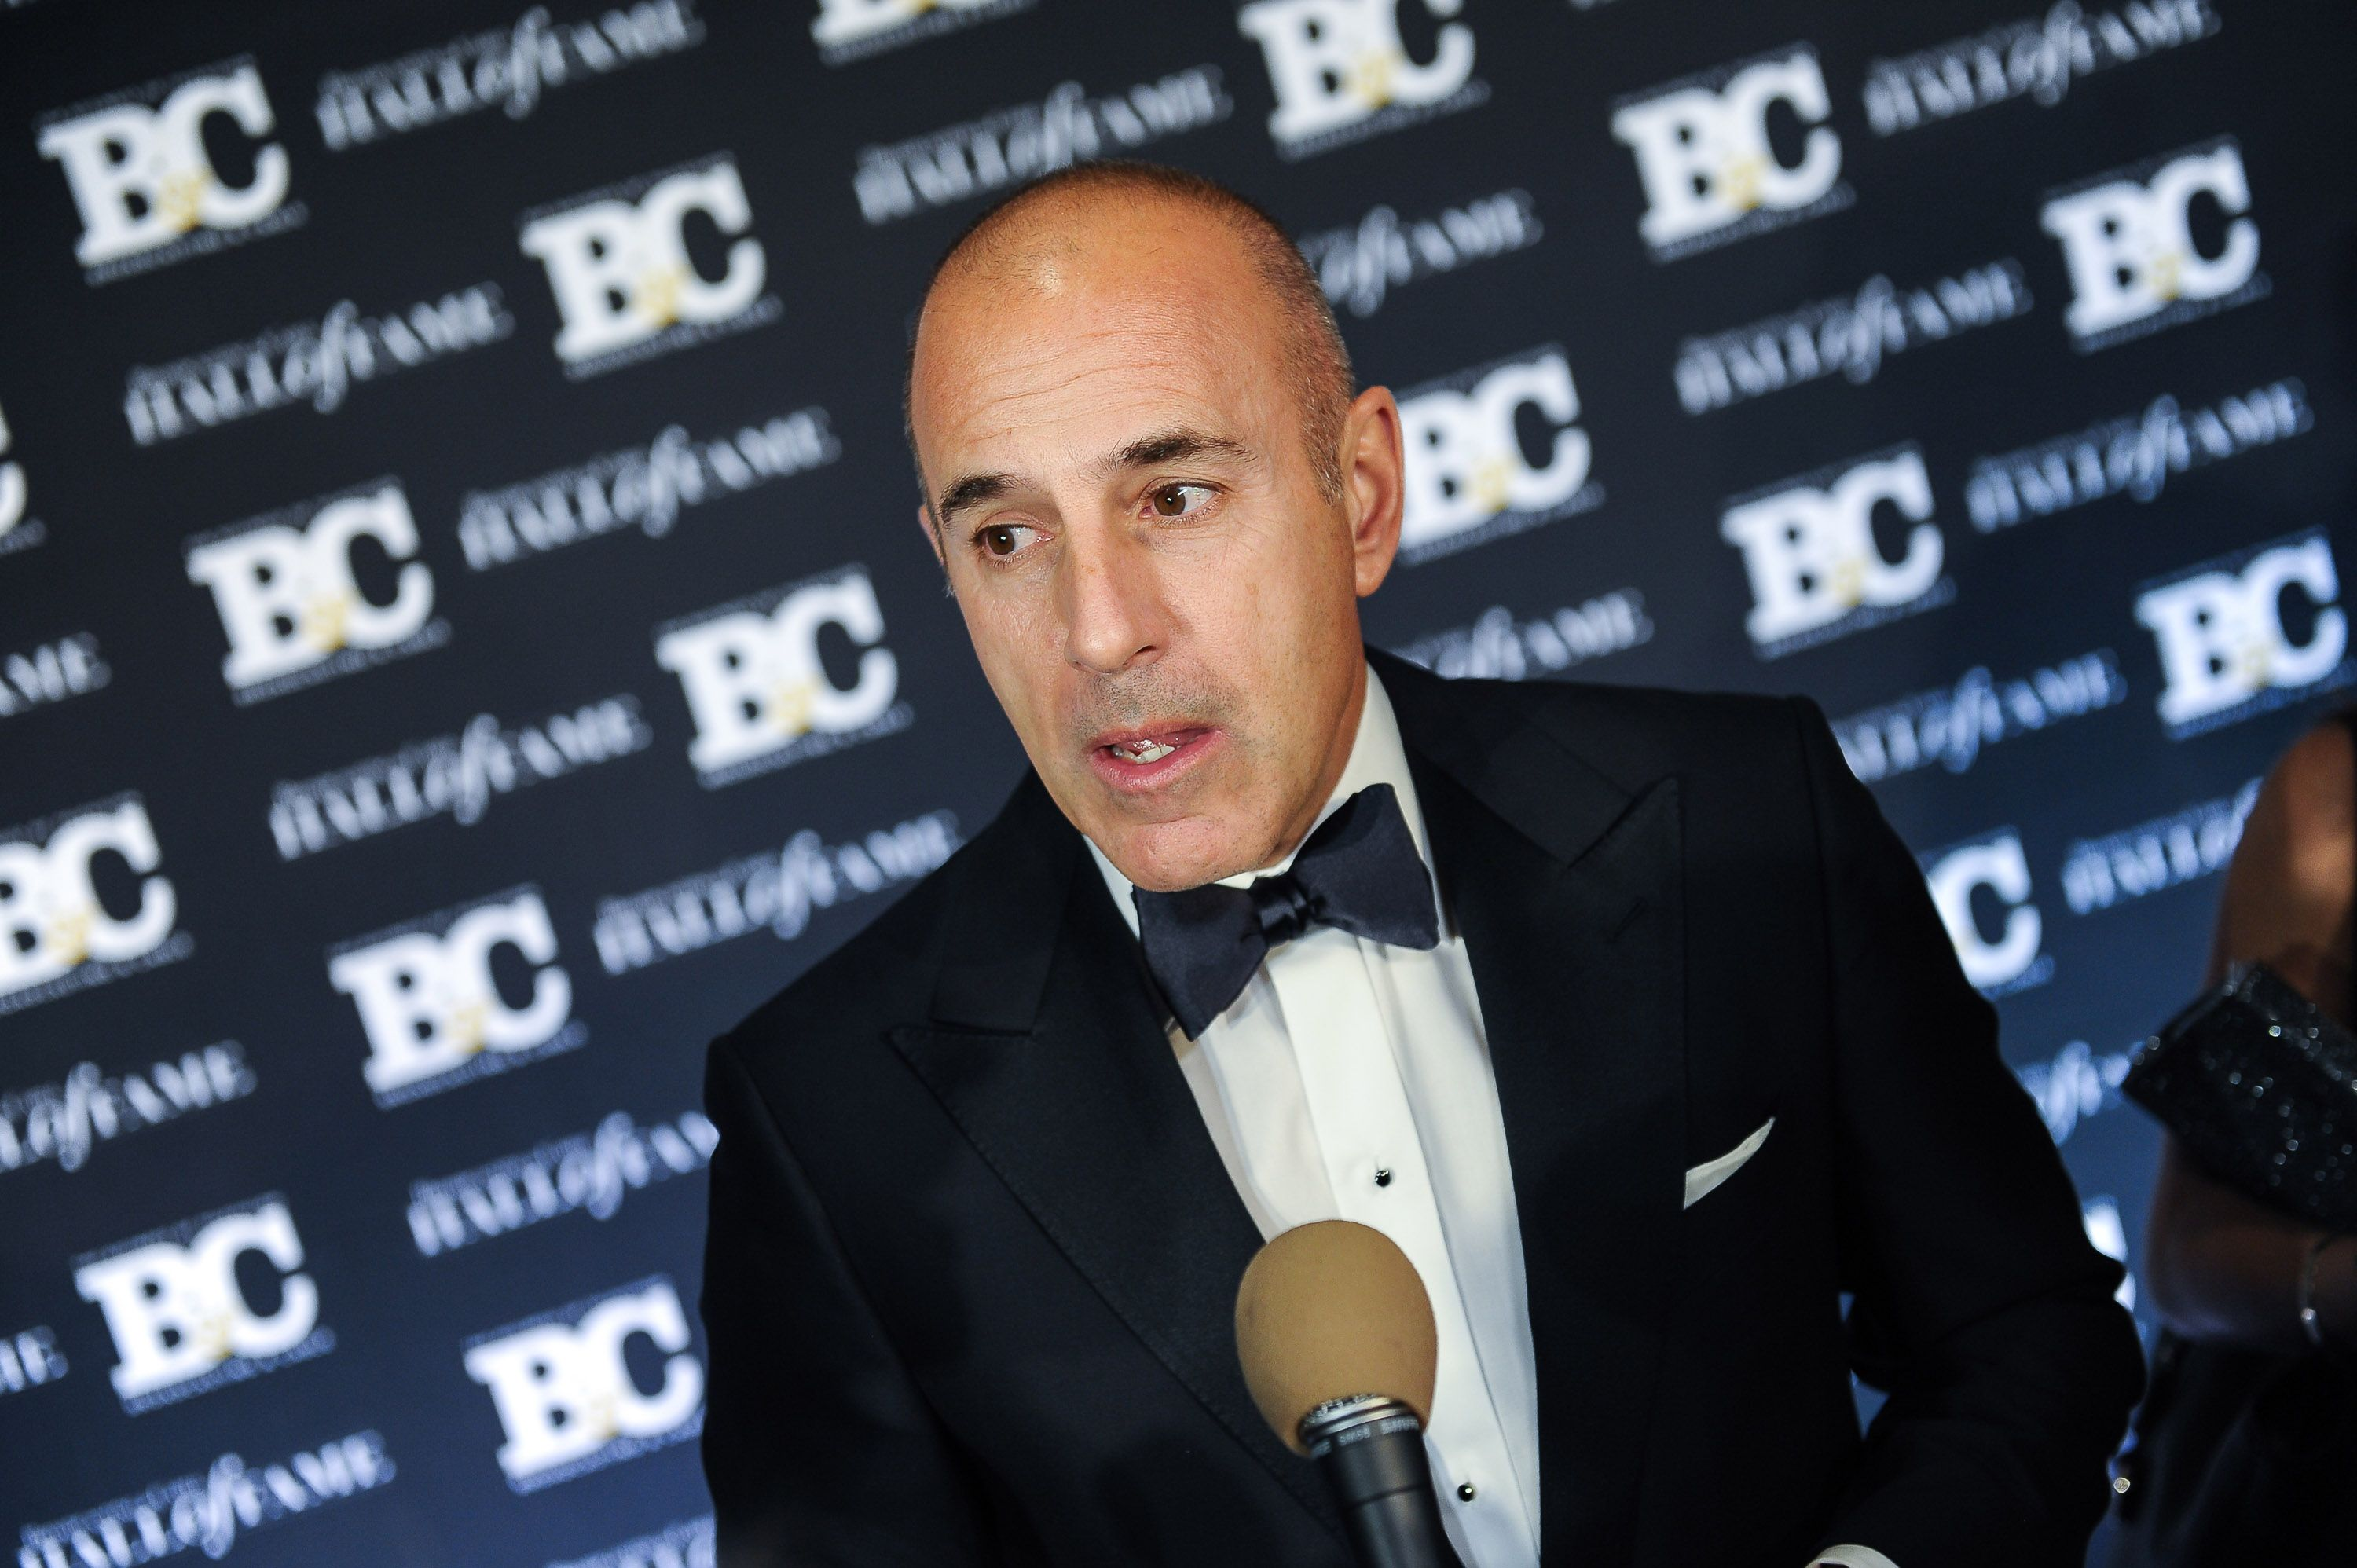 Matt Lauer at Broadcasting and Cable Hall Of Fame Awards 25th Anniversary Gala on October 20, 2015, in New York City. | Photo: Getty Images